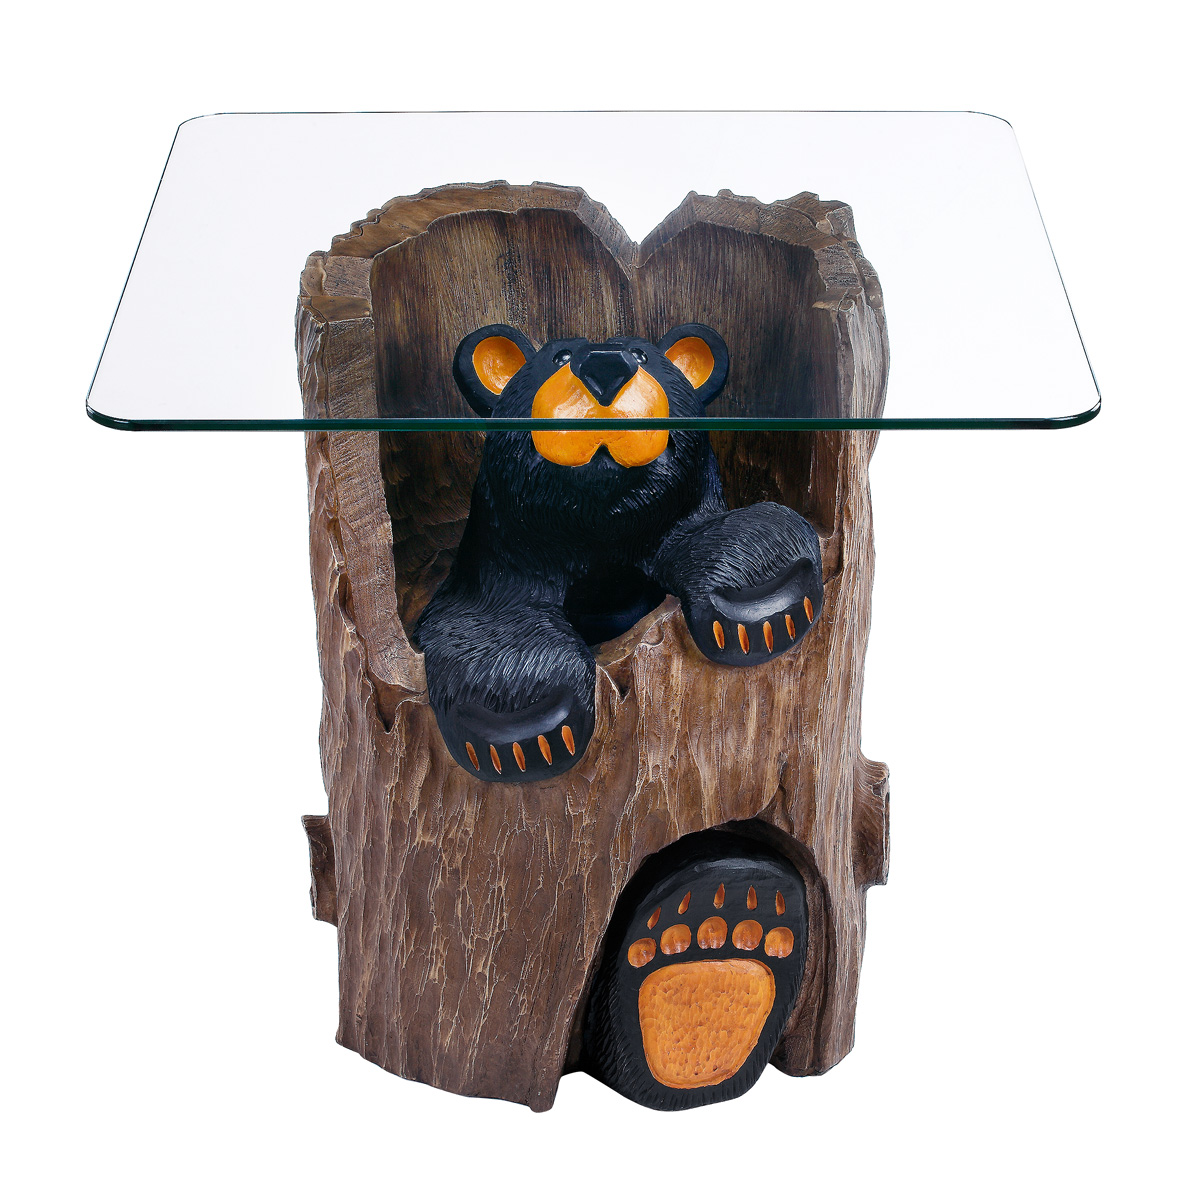 ruthie black bear end table tables unfinished wood side box frame nesting living room layout couches distressed coffee ashley furniture rancho cucamonga patio off white diy dog